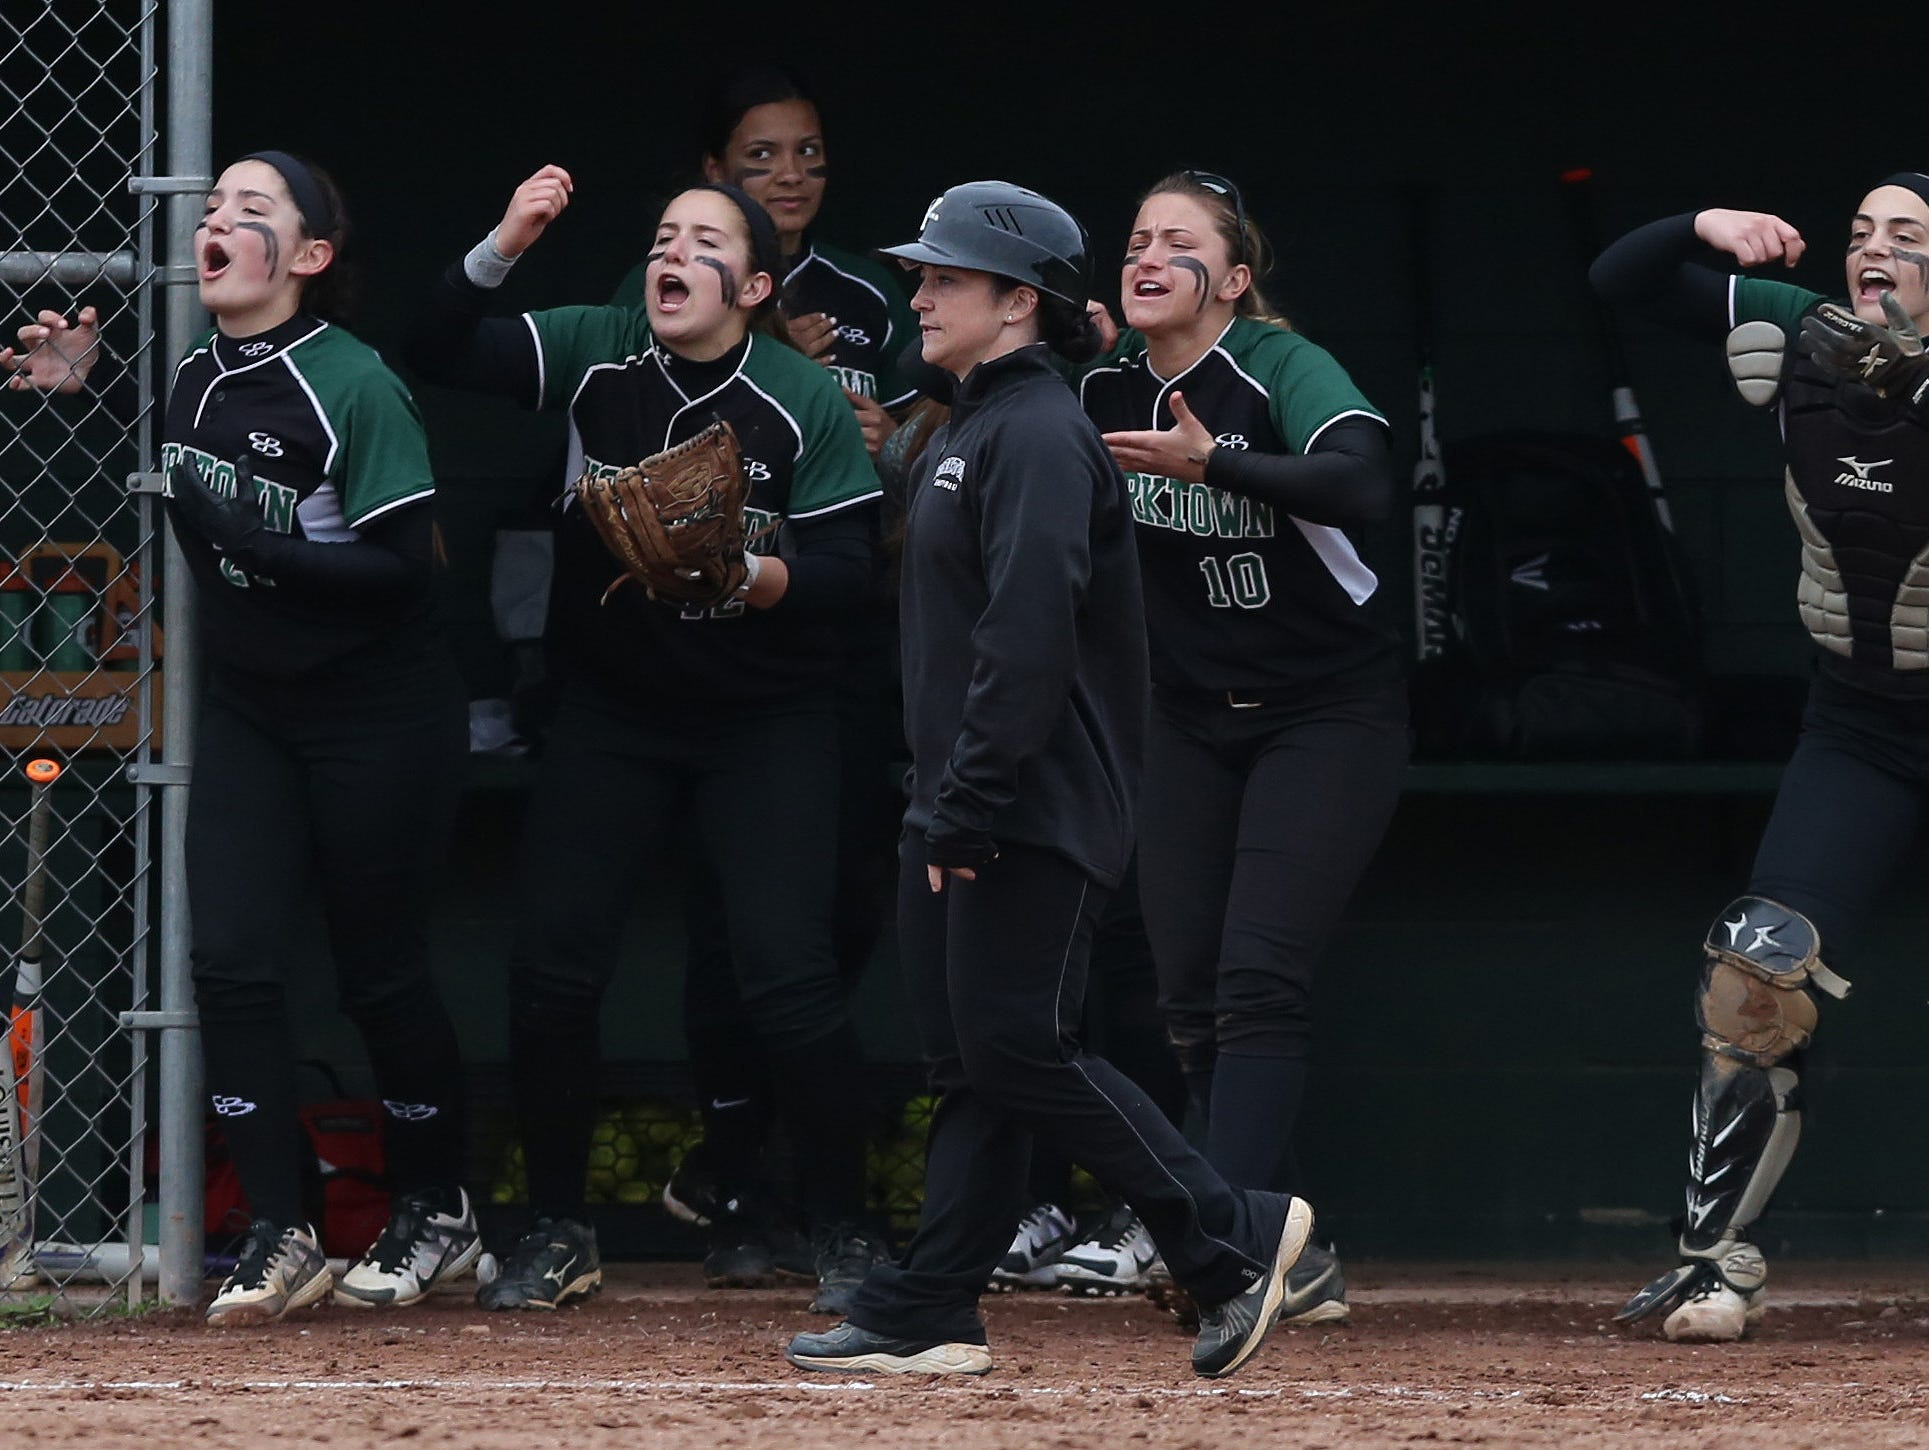 Yorktown defeated Brewster 6-4 in a girls softball game at Brewster High School May 5, 2016. Yorktown won the game 6-4.